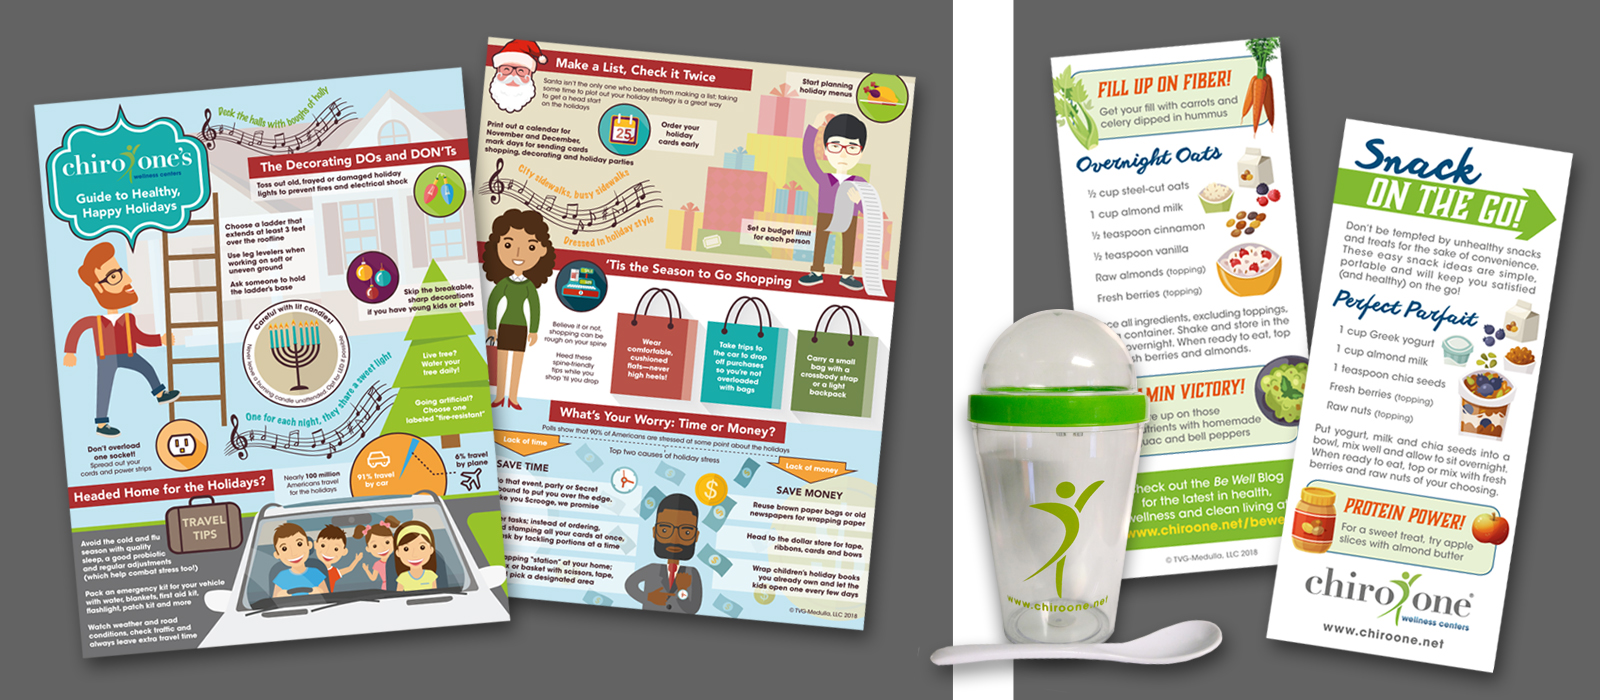 Chiro One Holiday and Healthy Snacks Info Graphic Cards